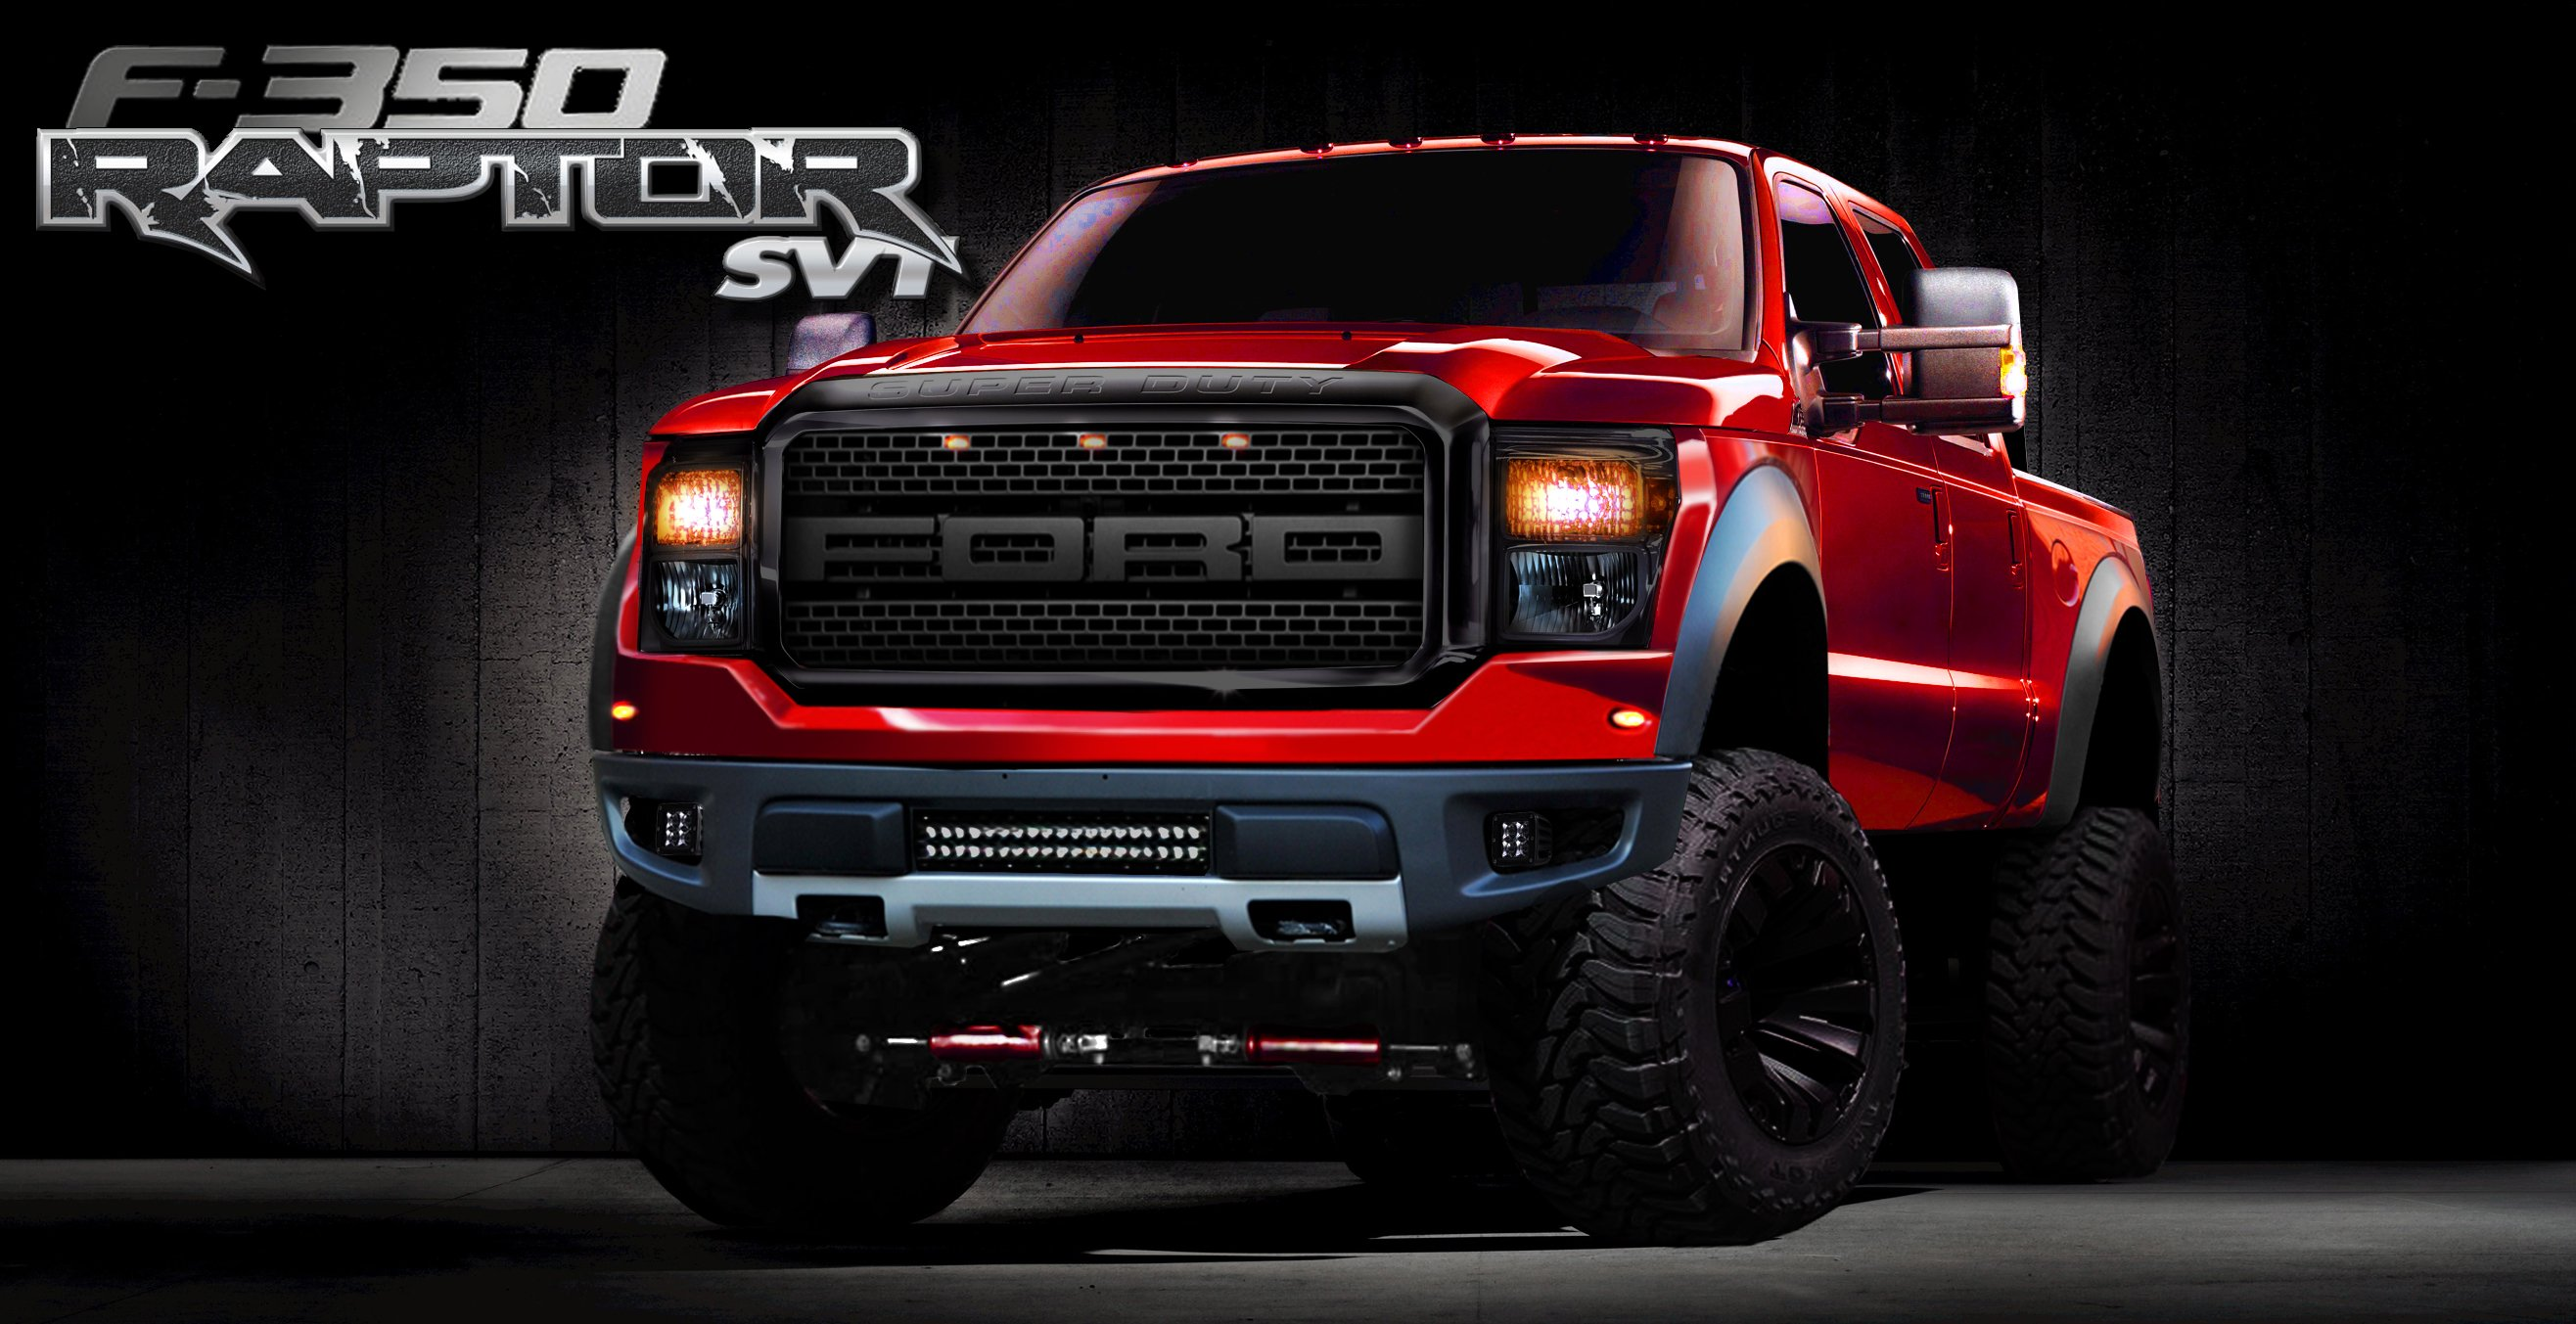 ford f 350 raptor red heavy pick up wallpaper wallpaper 2632x1353 769446 wallpaperup. Black Bedroom Furniture Sets. Home Design Ideas